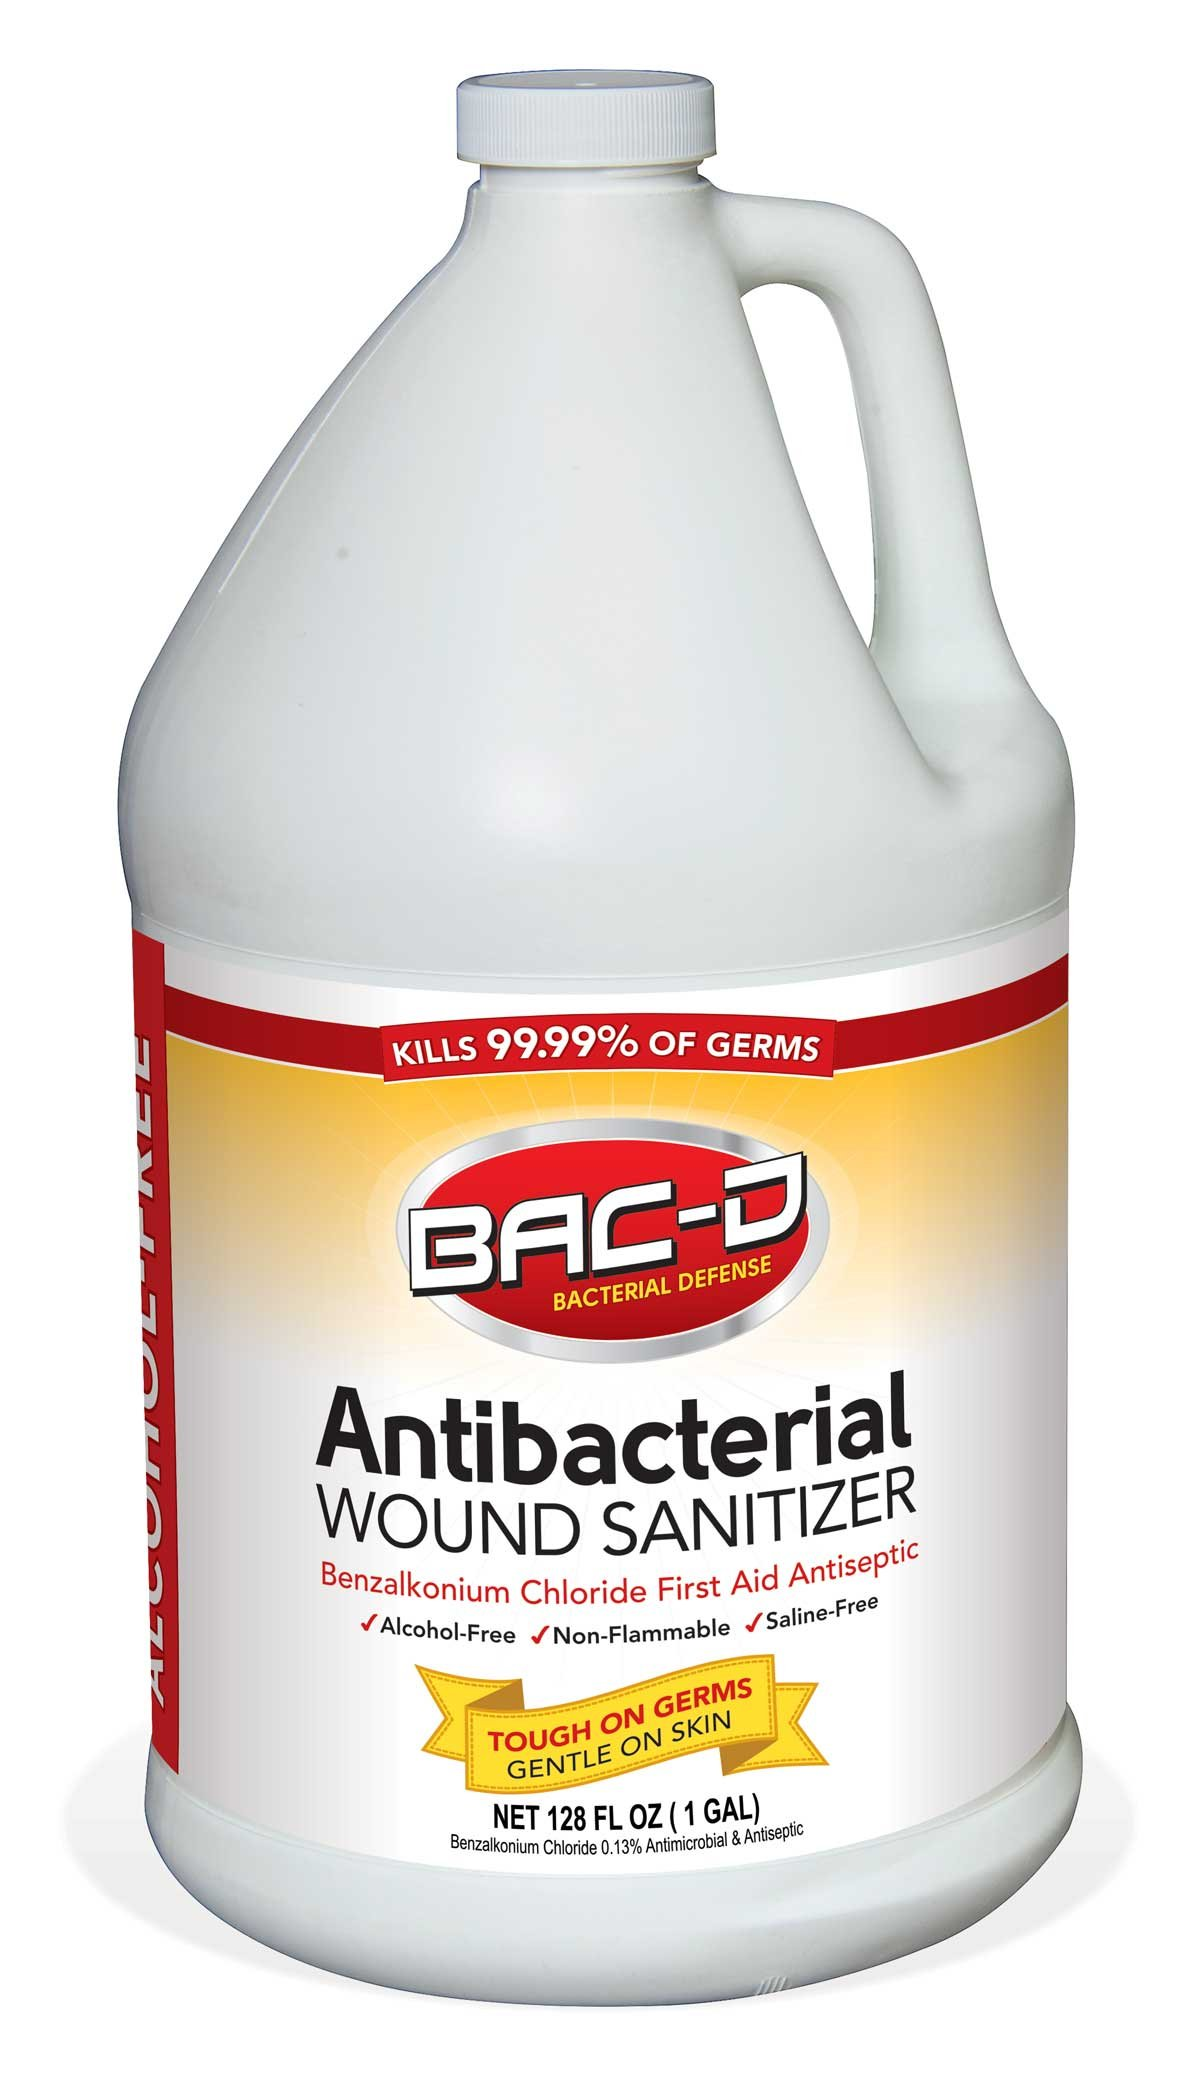 BAC-D 631 Antibacterial Alcohol Free Wound Sanitizer, 1 Gallon Refill, 128 oz. (Pack of 1) by BAC-D